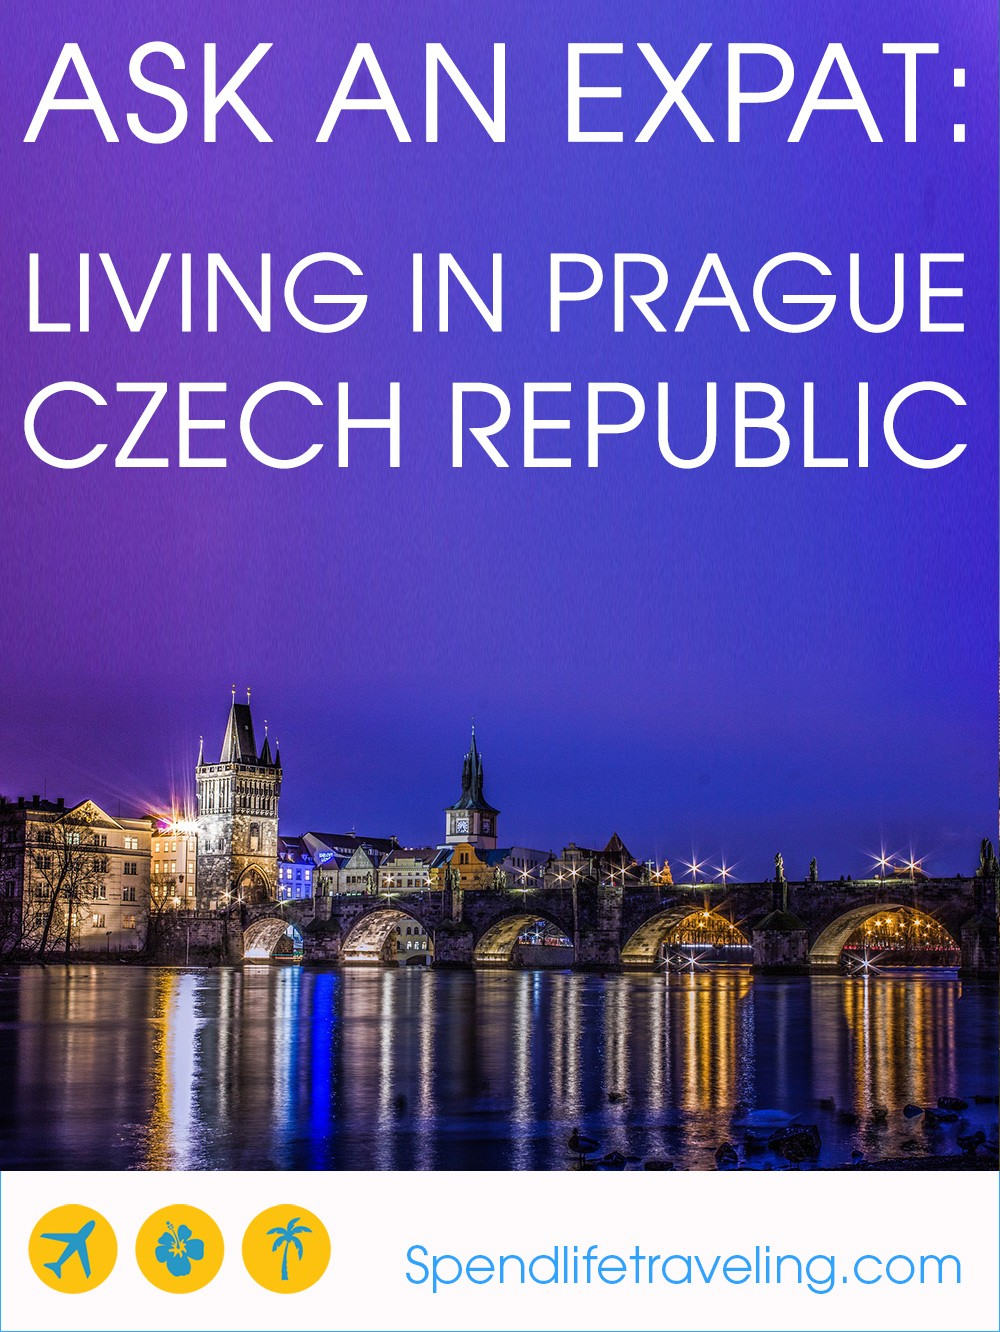 Interview with an expat about what life in Prague is like.